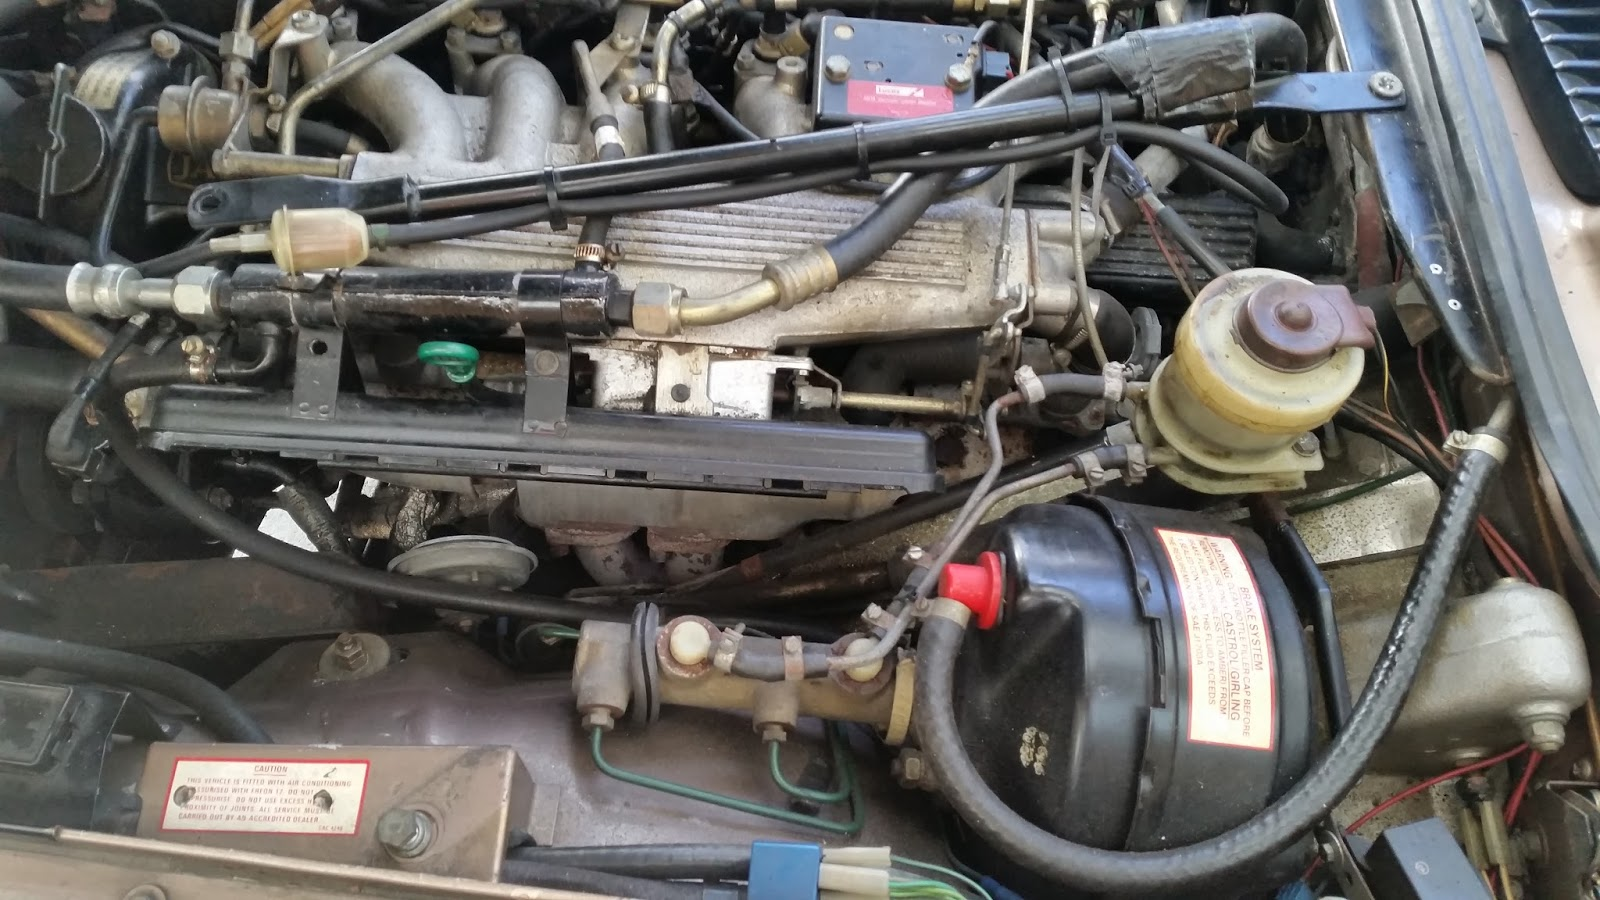 Jaguar Xjs Auxiliary Air Valve High Idle Engine Wiring In Order To Access The Aav Properly I Moved Bar And Filter Completely